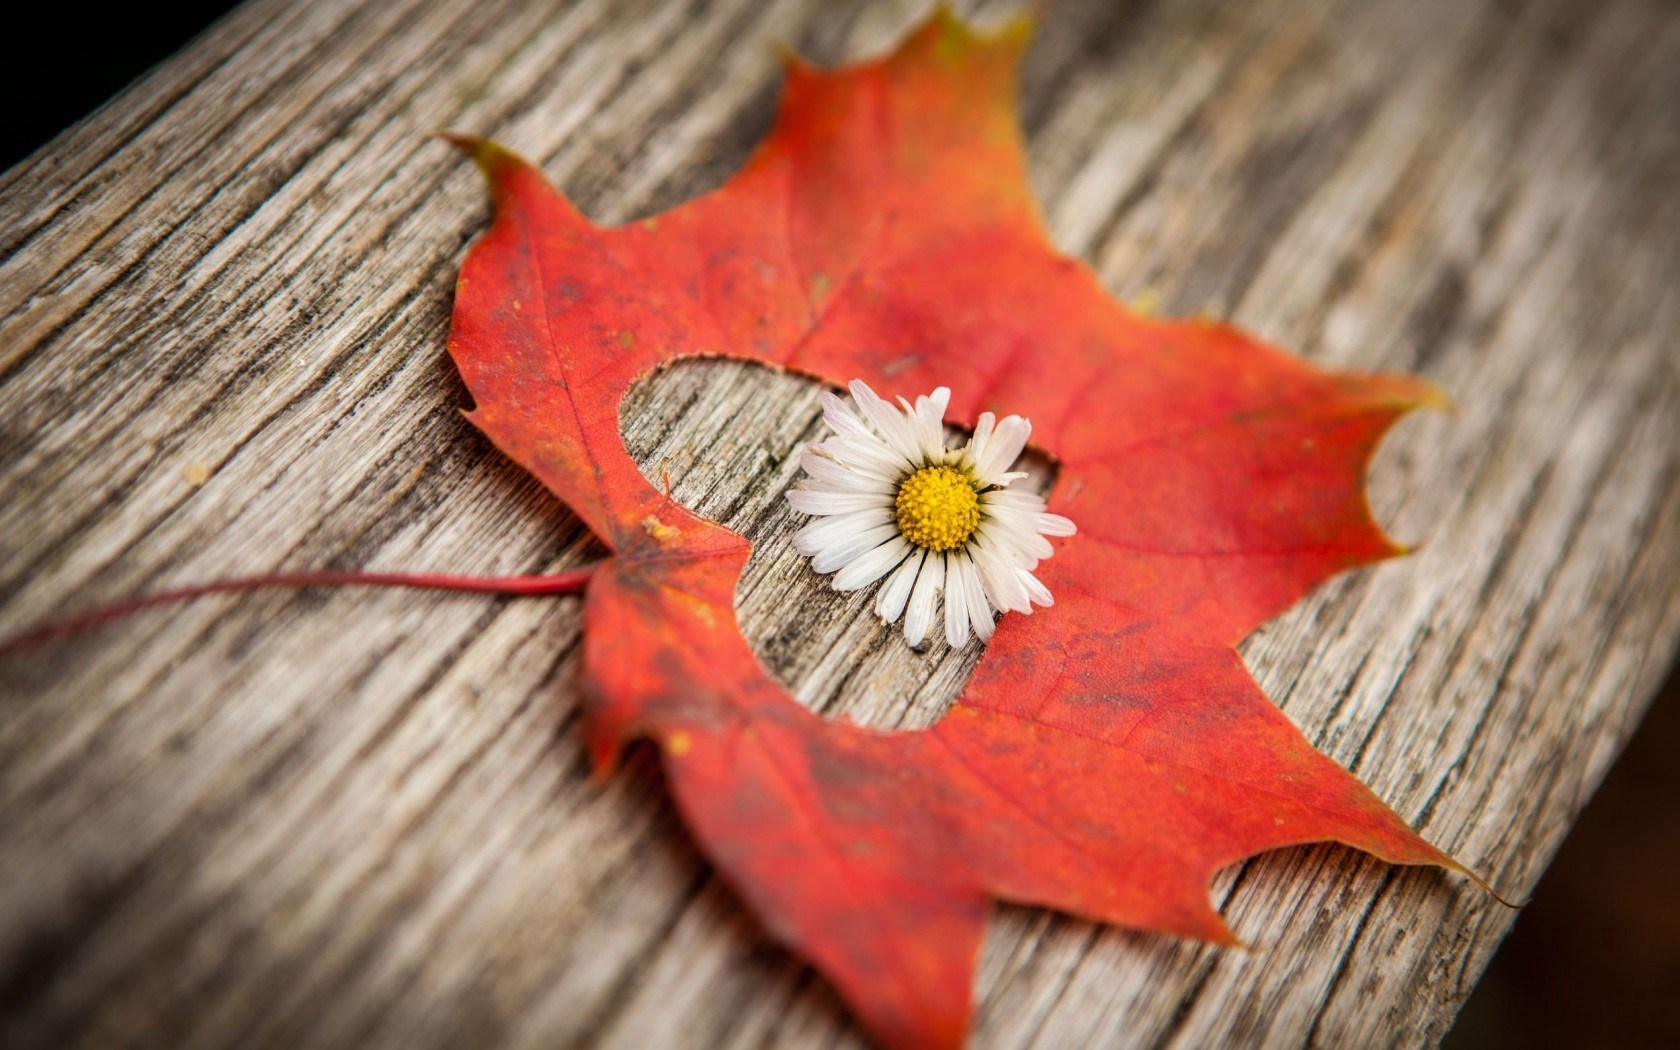 Autumn Flower Leaf Heart Love Mood HD Wallpaper